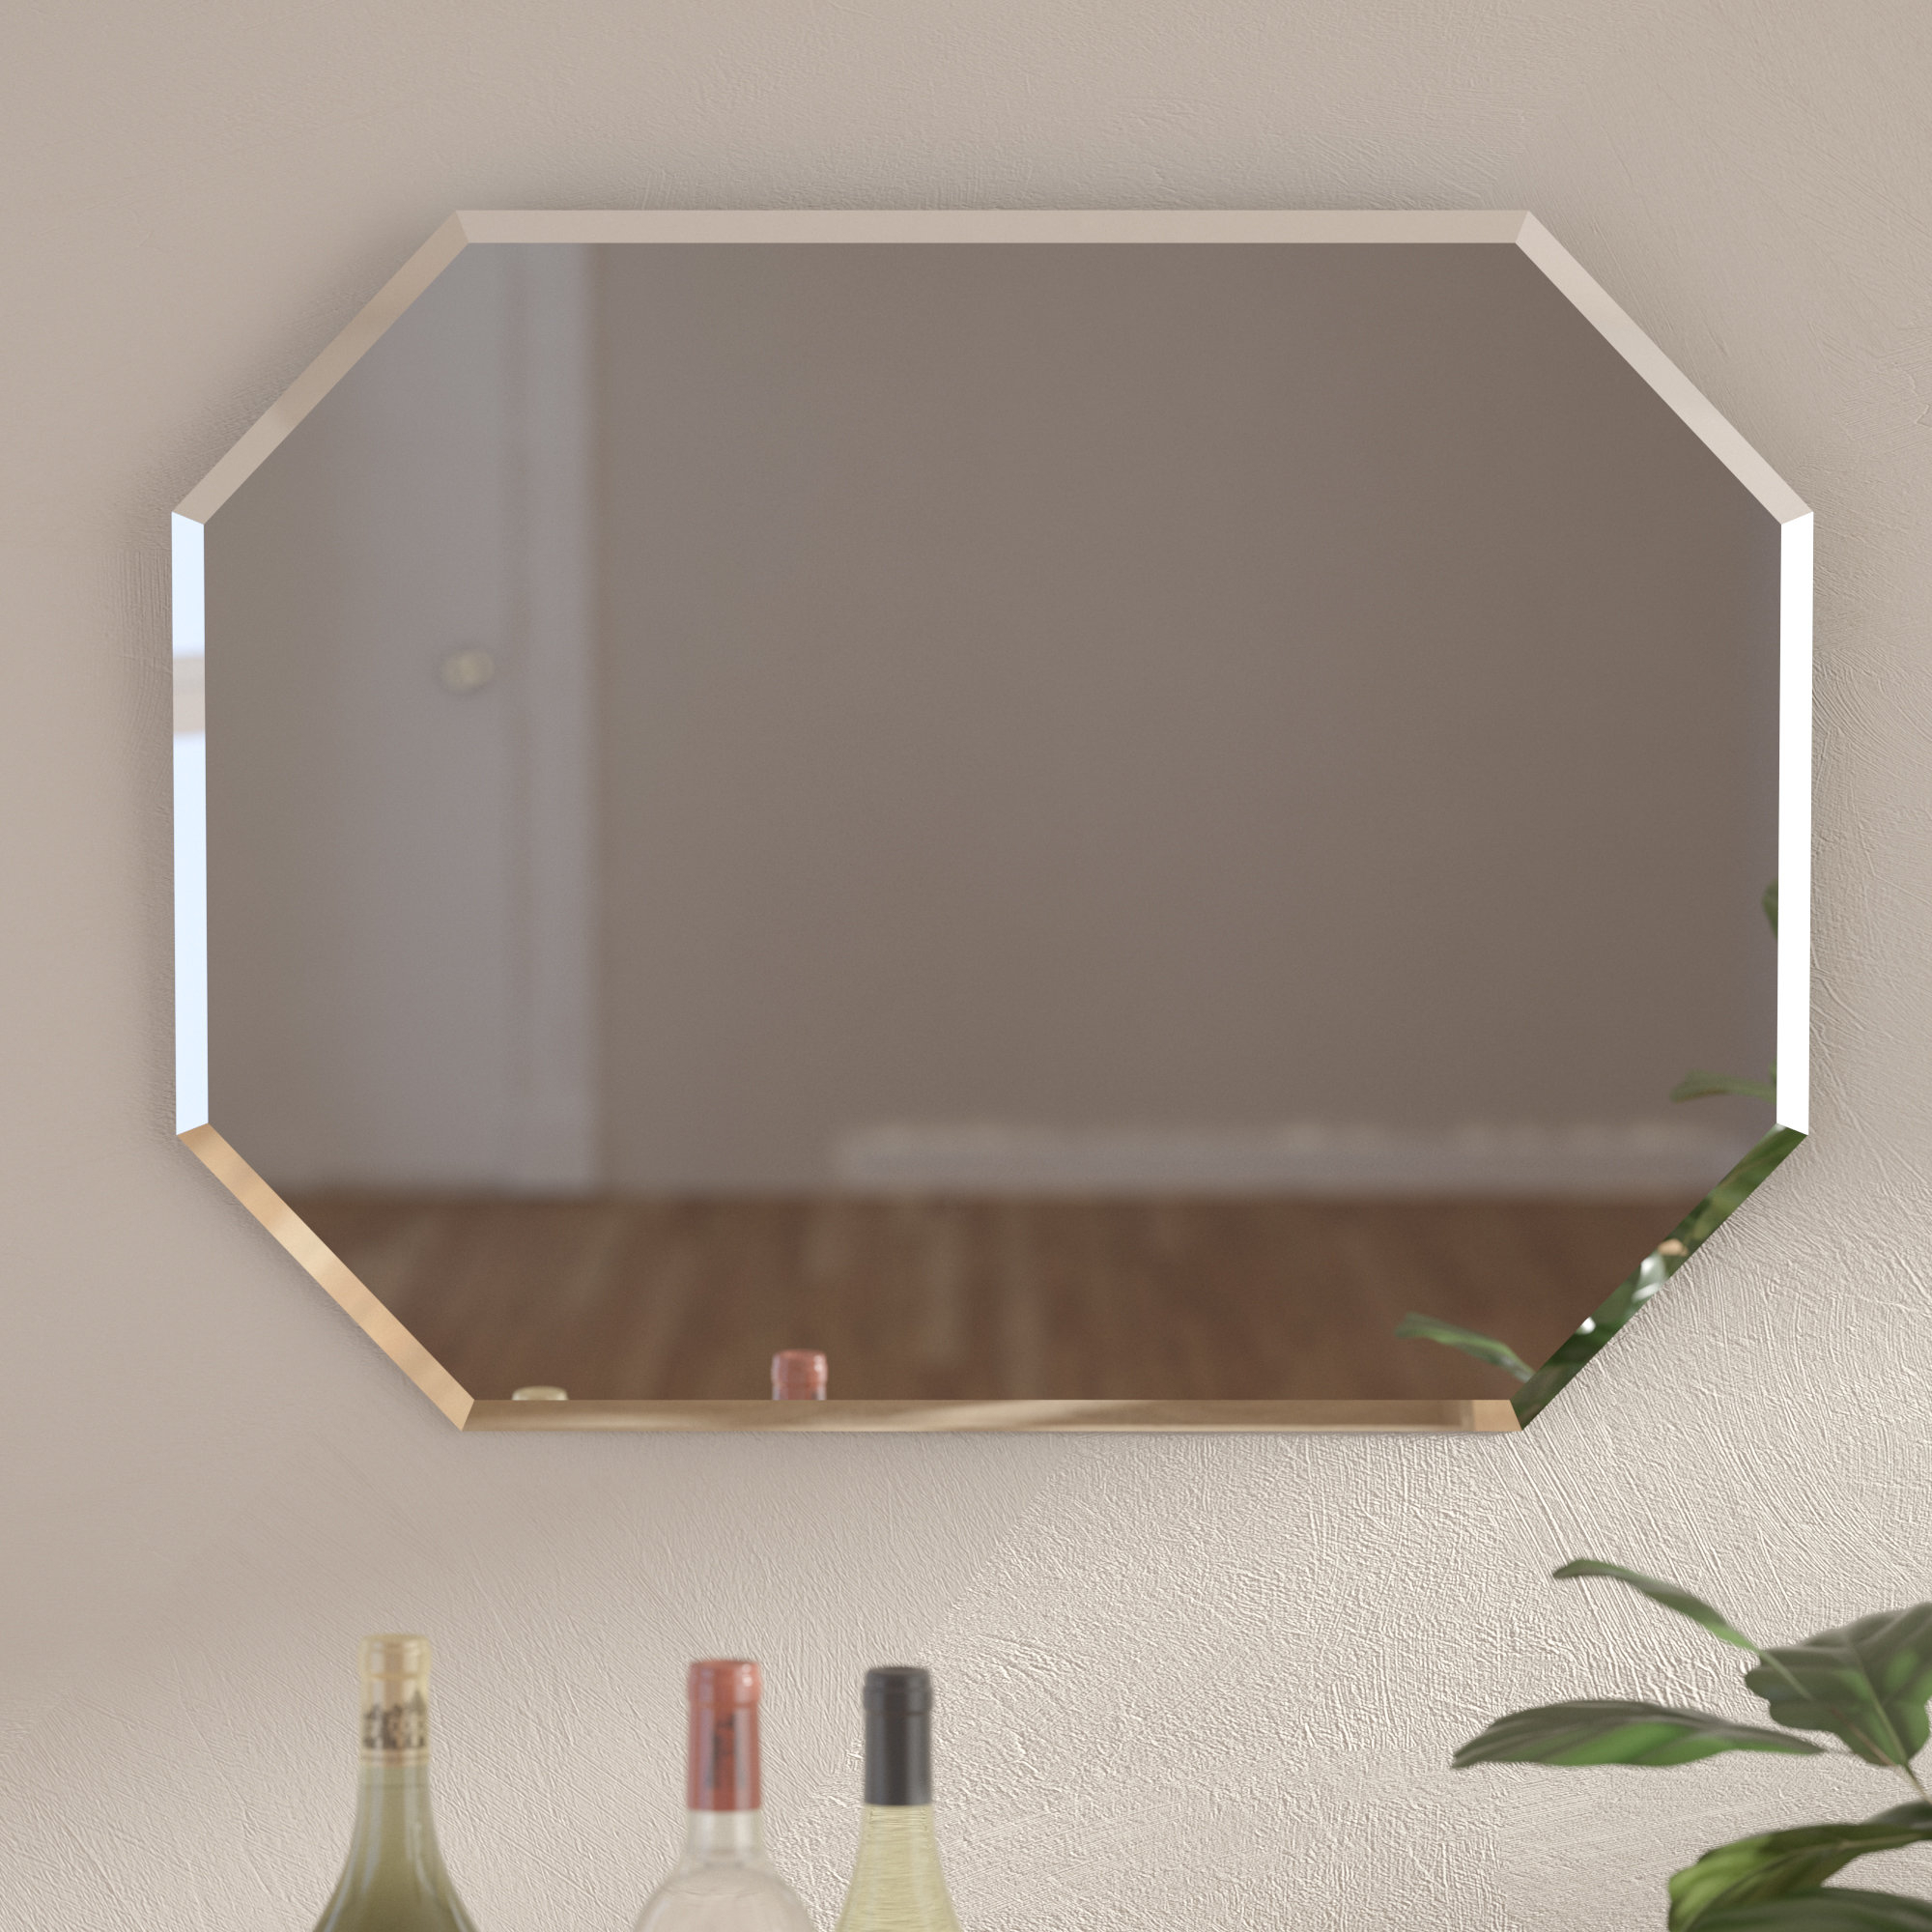 Reign Frameless Oval Scalloped Beveled Wall Mirrors For Fashionable Cannonball Creek Frameless Beveled Wall Mirror (View 16 of 20)